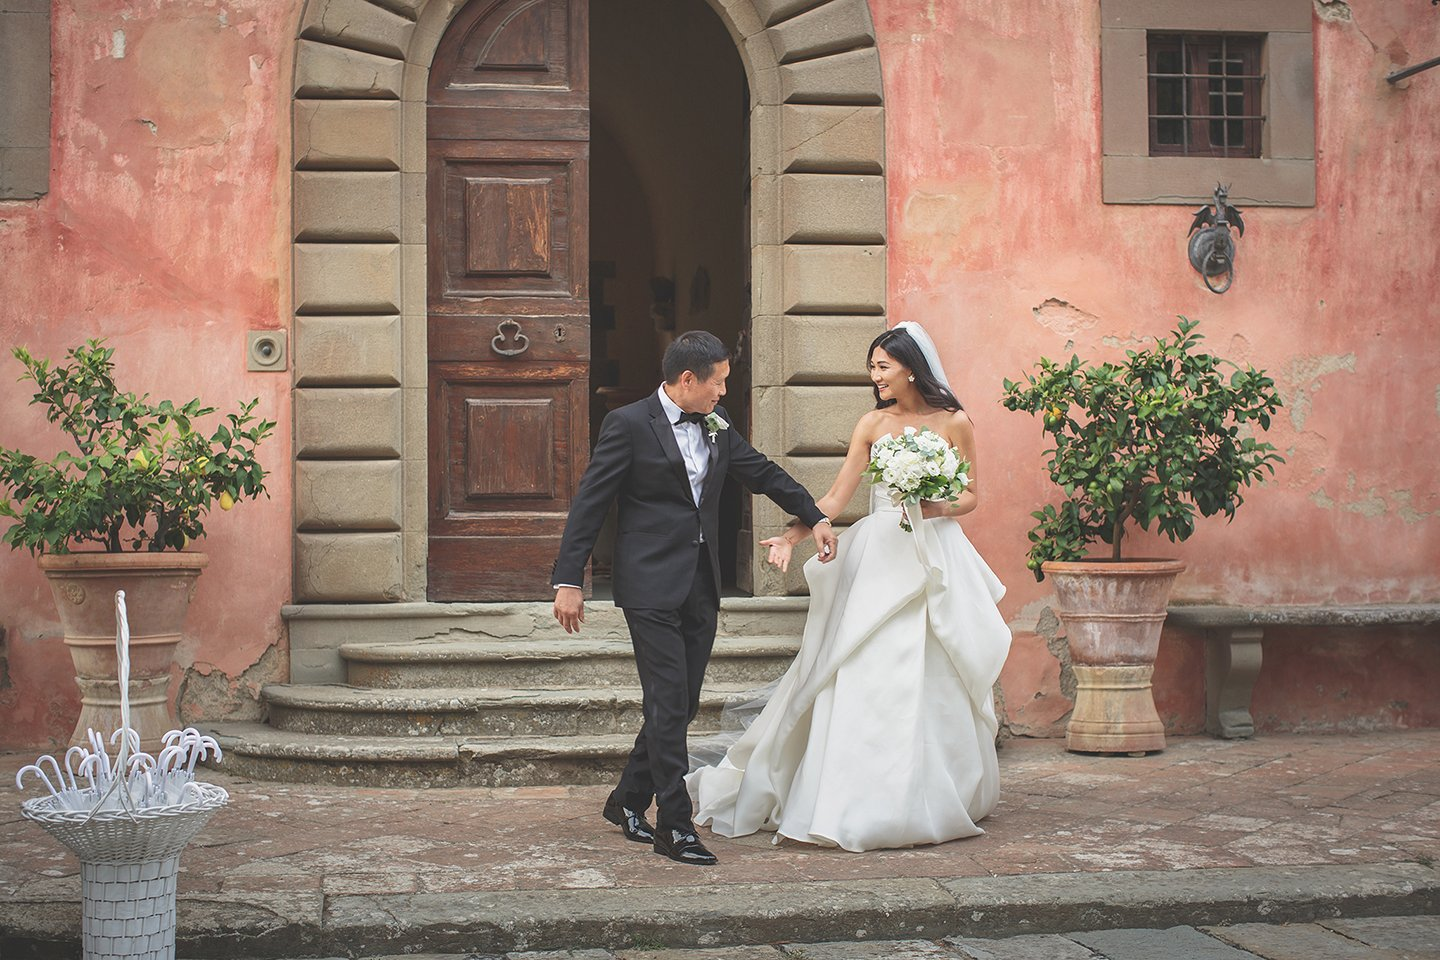 bride-walking-down-the-aisle-blessing-outdoor-ceremony-Vignamaggio-tuscany-